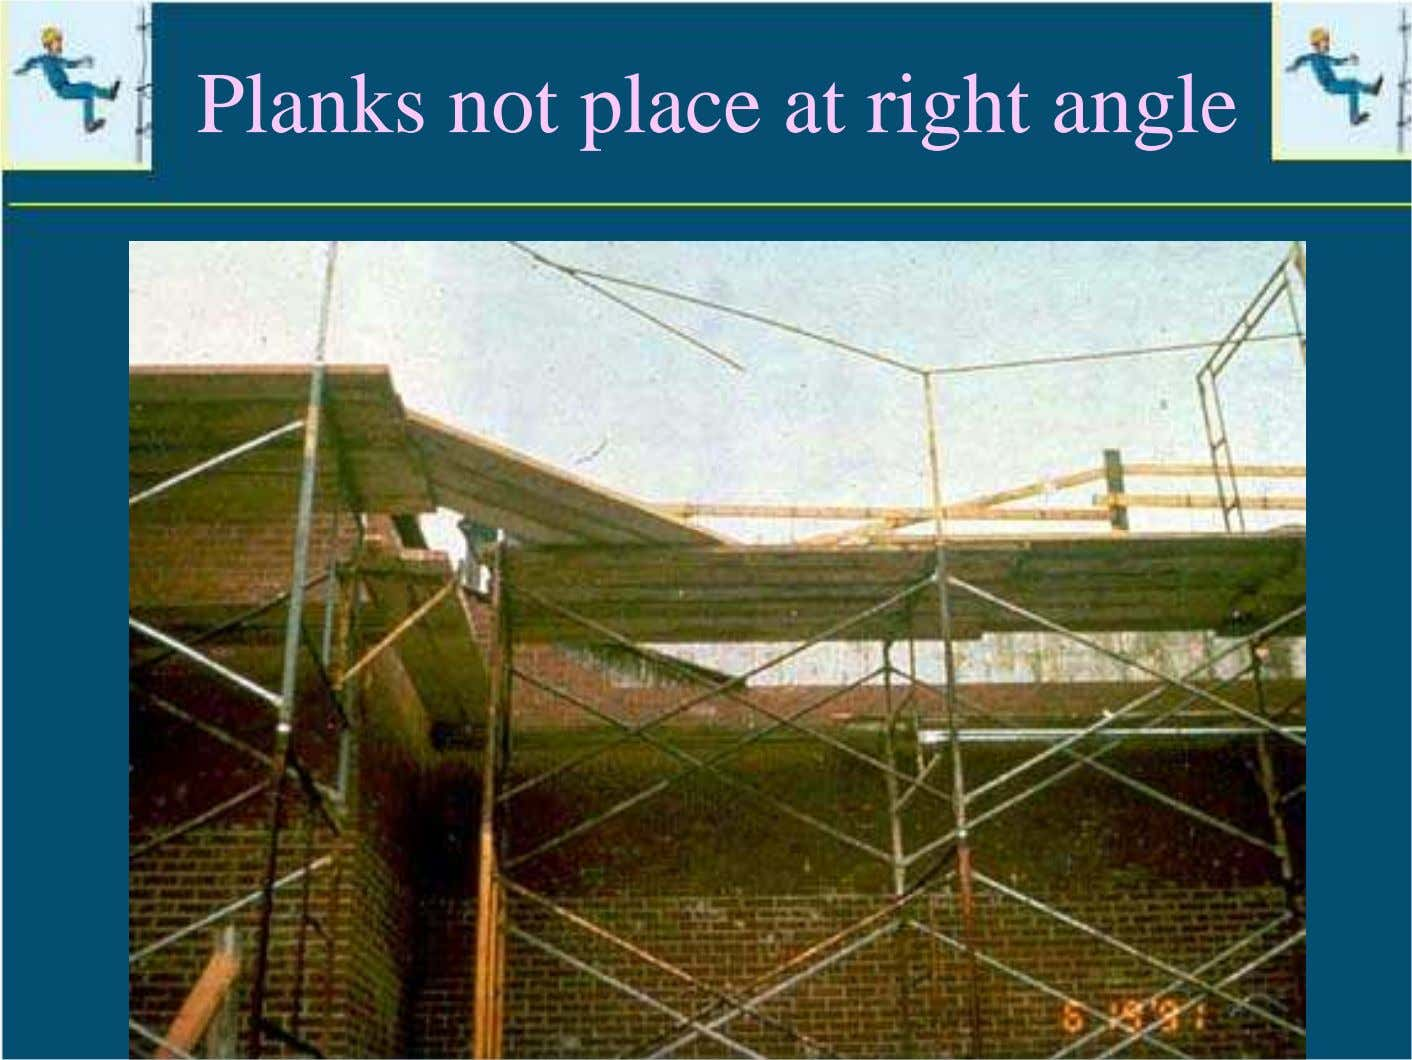 Planks not place at right angle